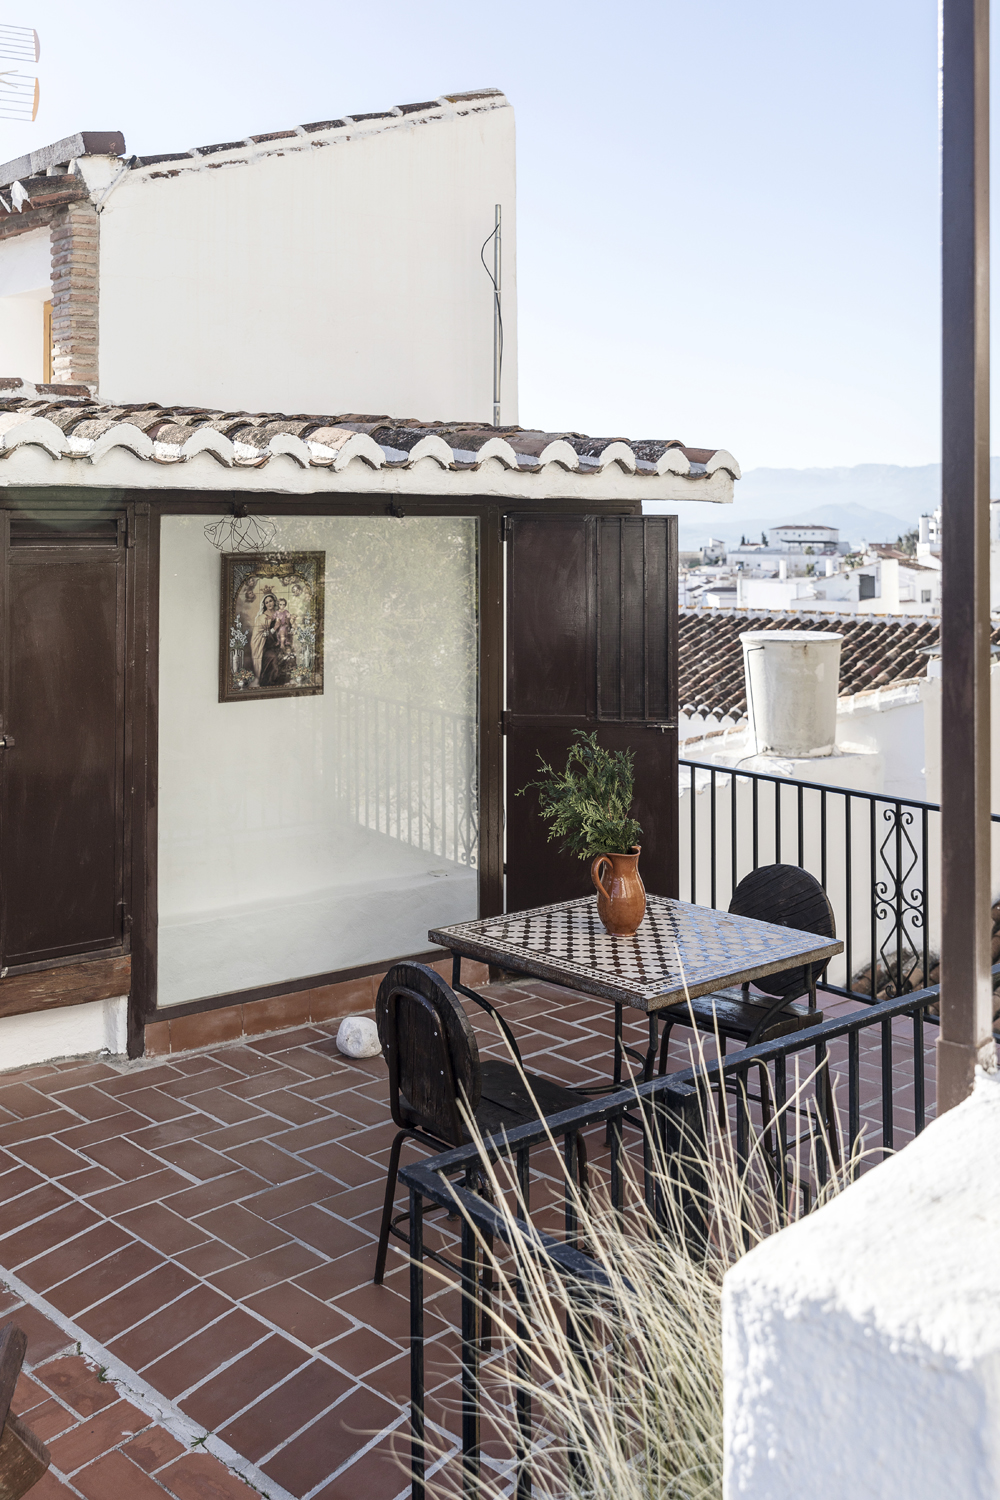 Canillas de Aceituno, Spain, holiday, rent, apartment, townhouse, rental, vacationhome, home, interior, spanish, style, interiorphotography, interior design, photographer, Frida Steiner, Visualaddict, visualaddictfrida, roofterrace, terrace, outdoors, patio